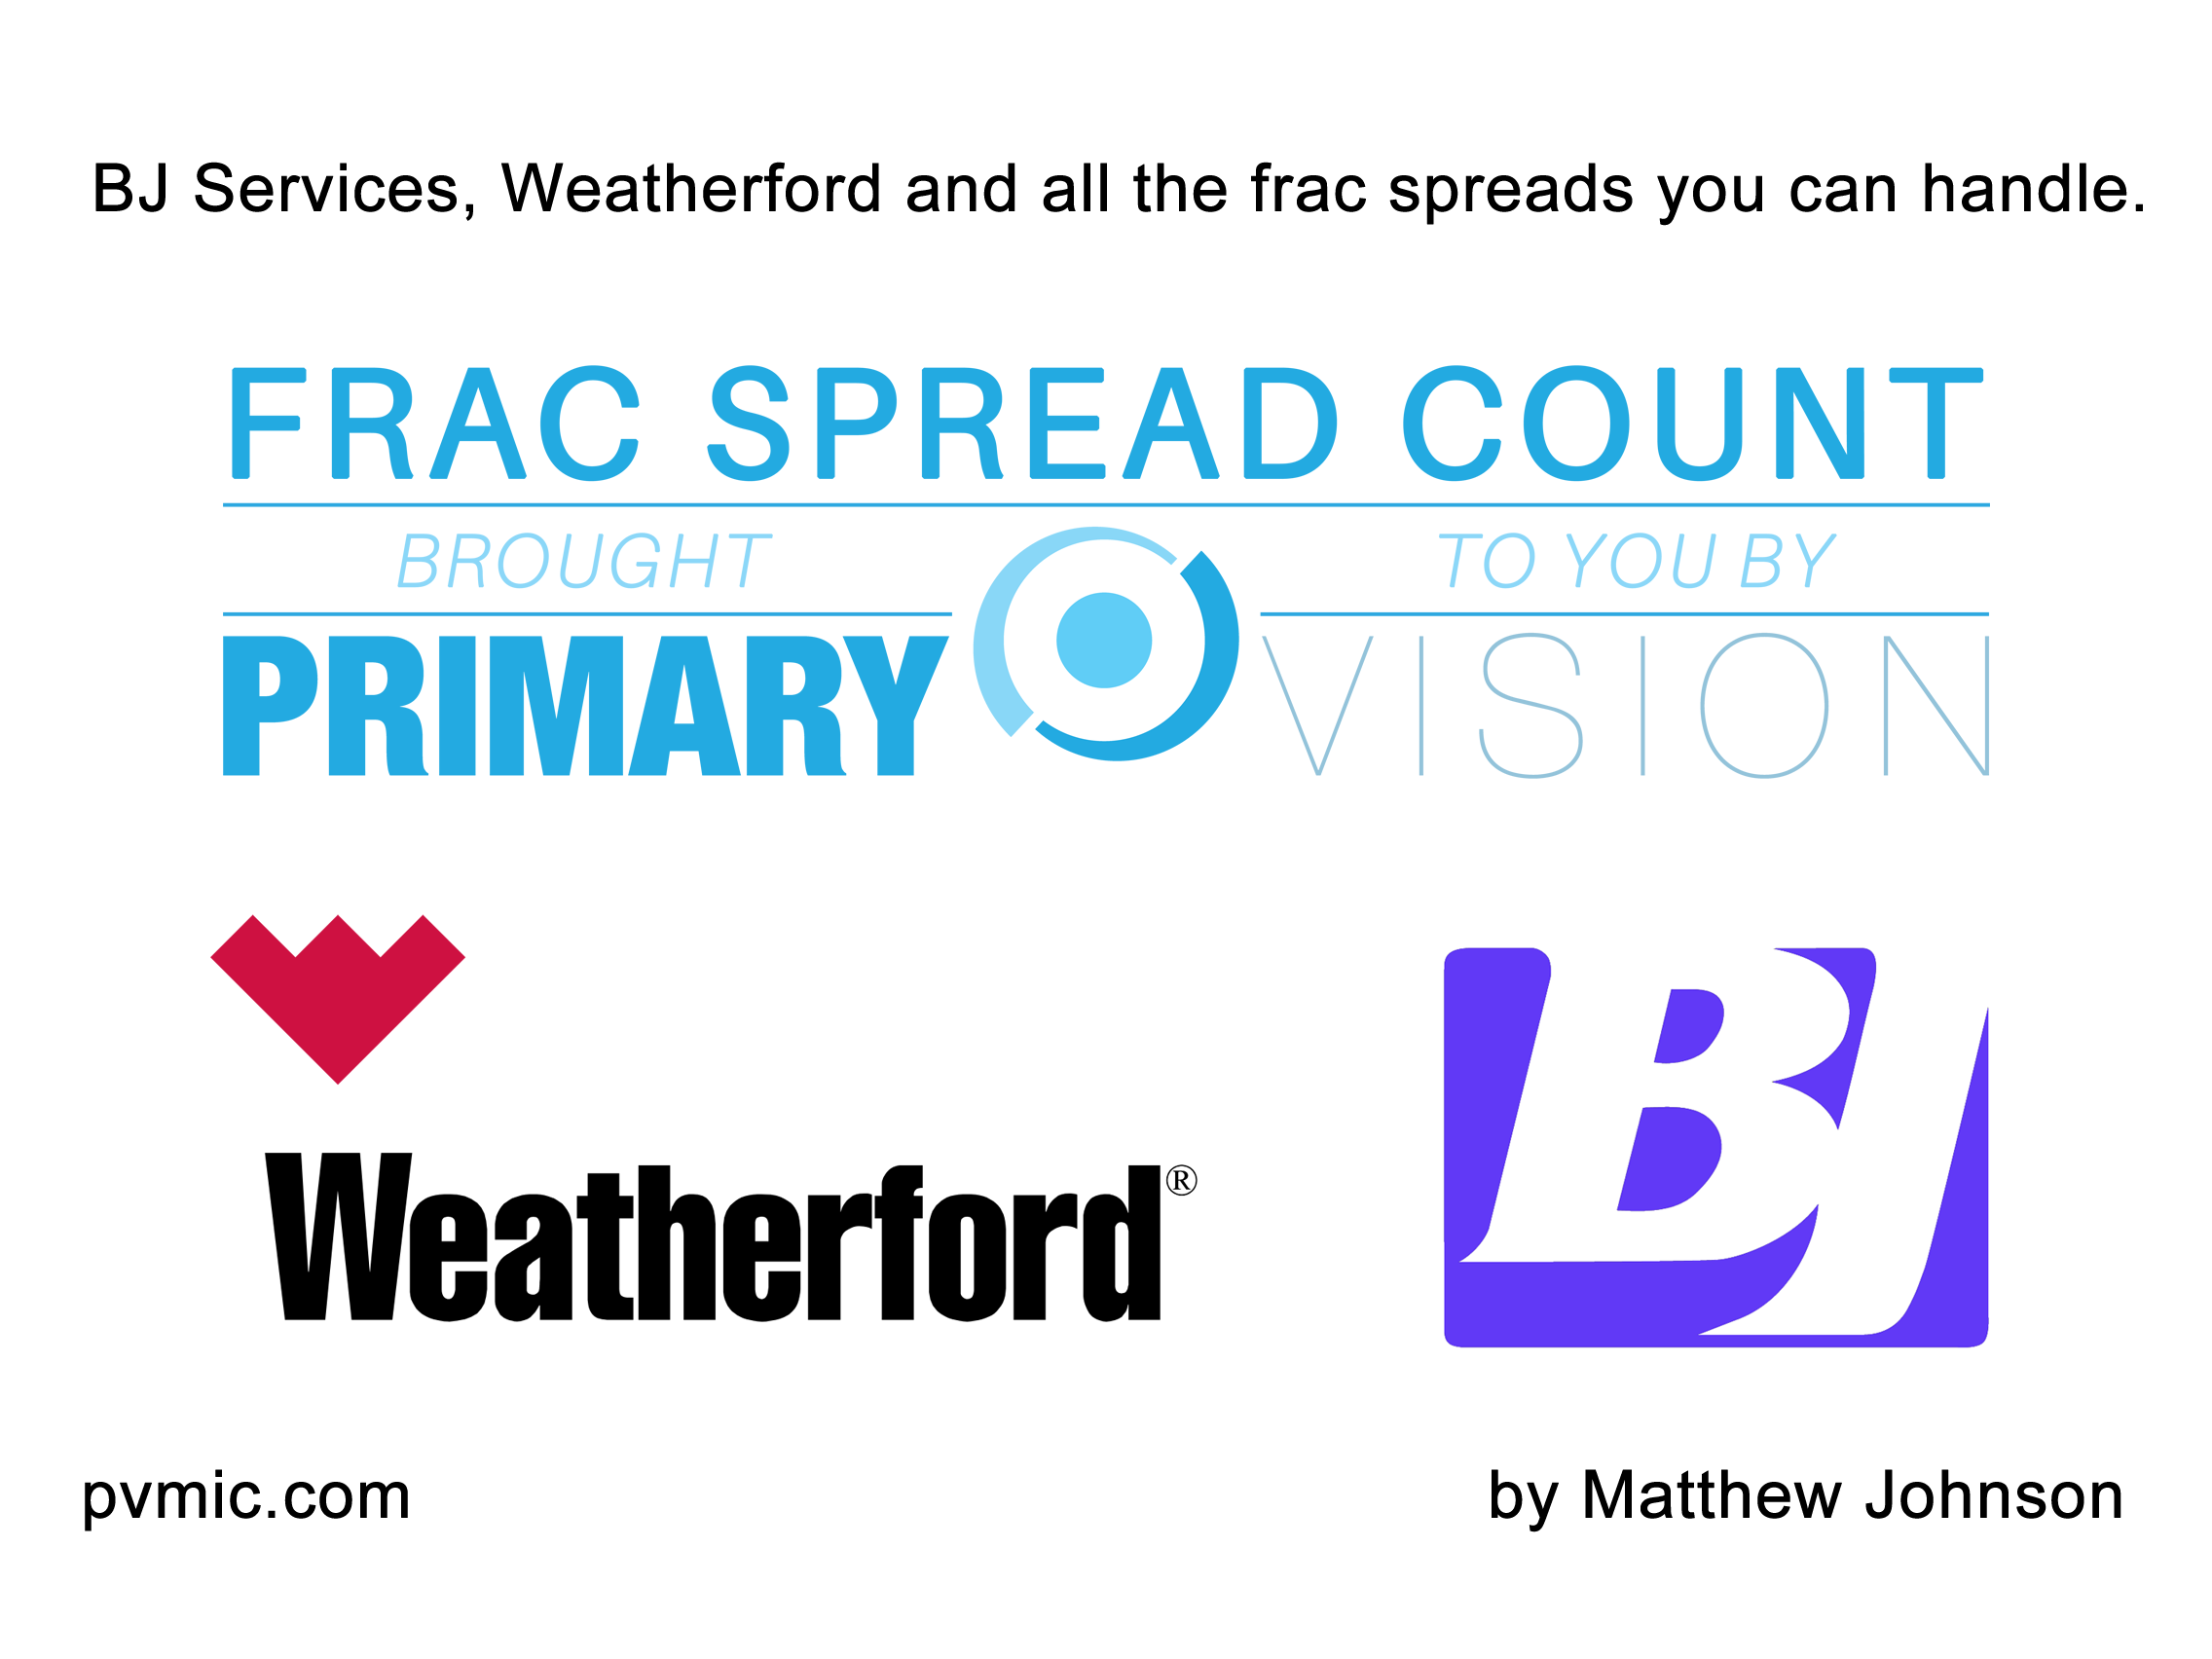 bj--fsc-weatherford-logo